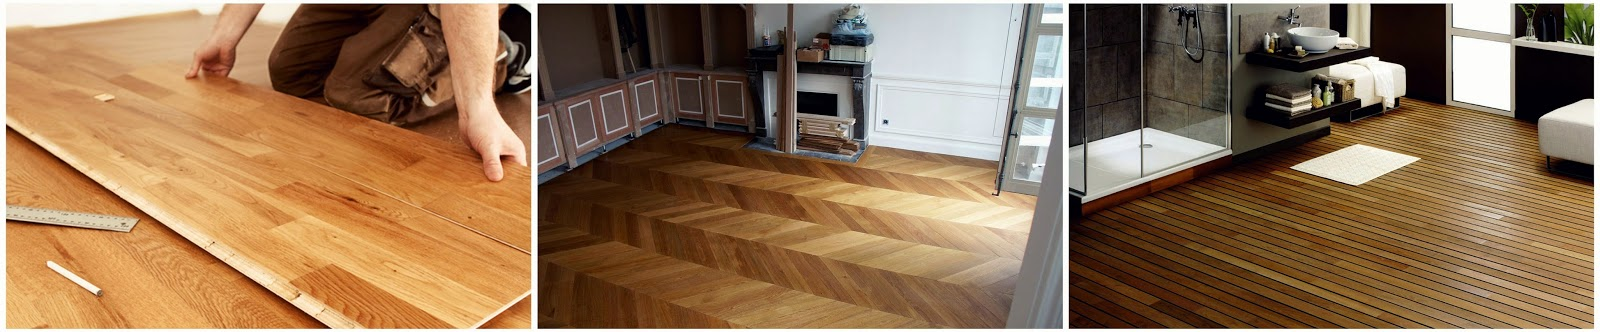 pose parquet Paris